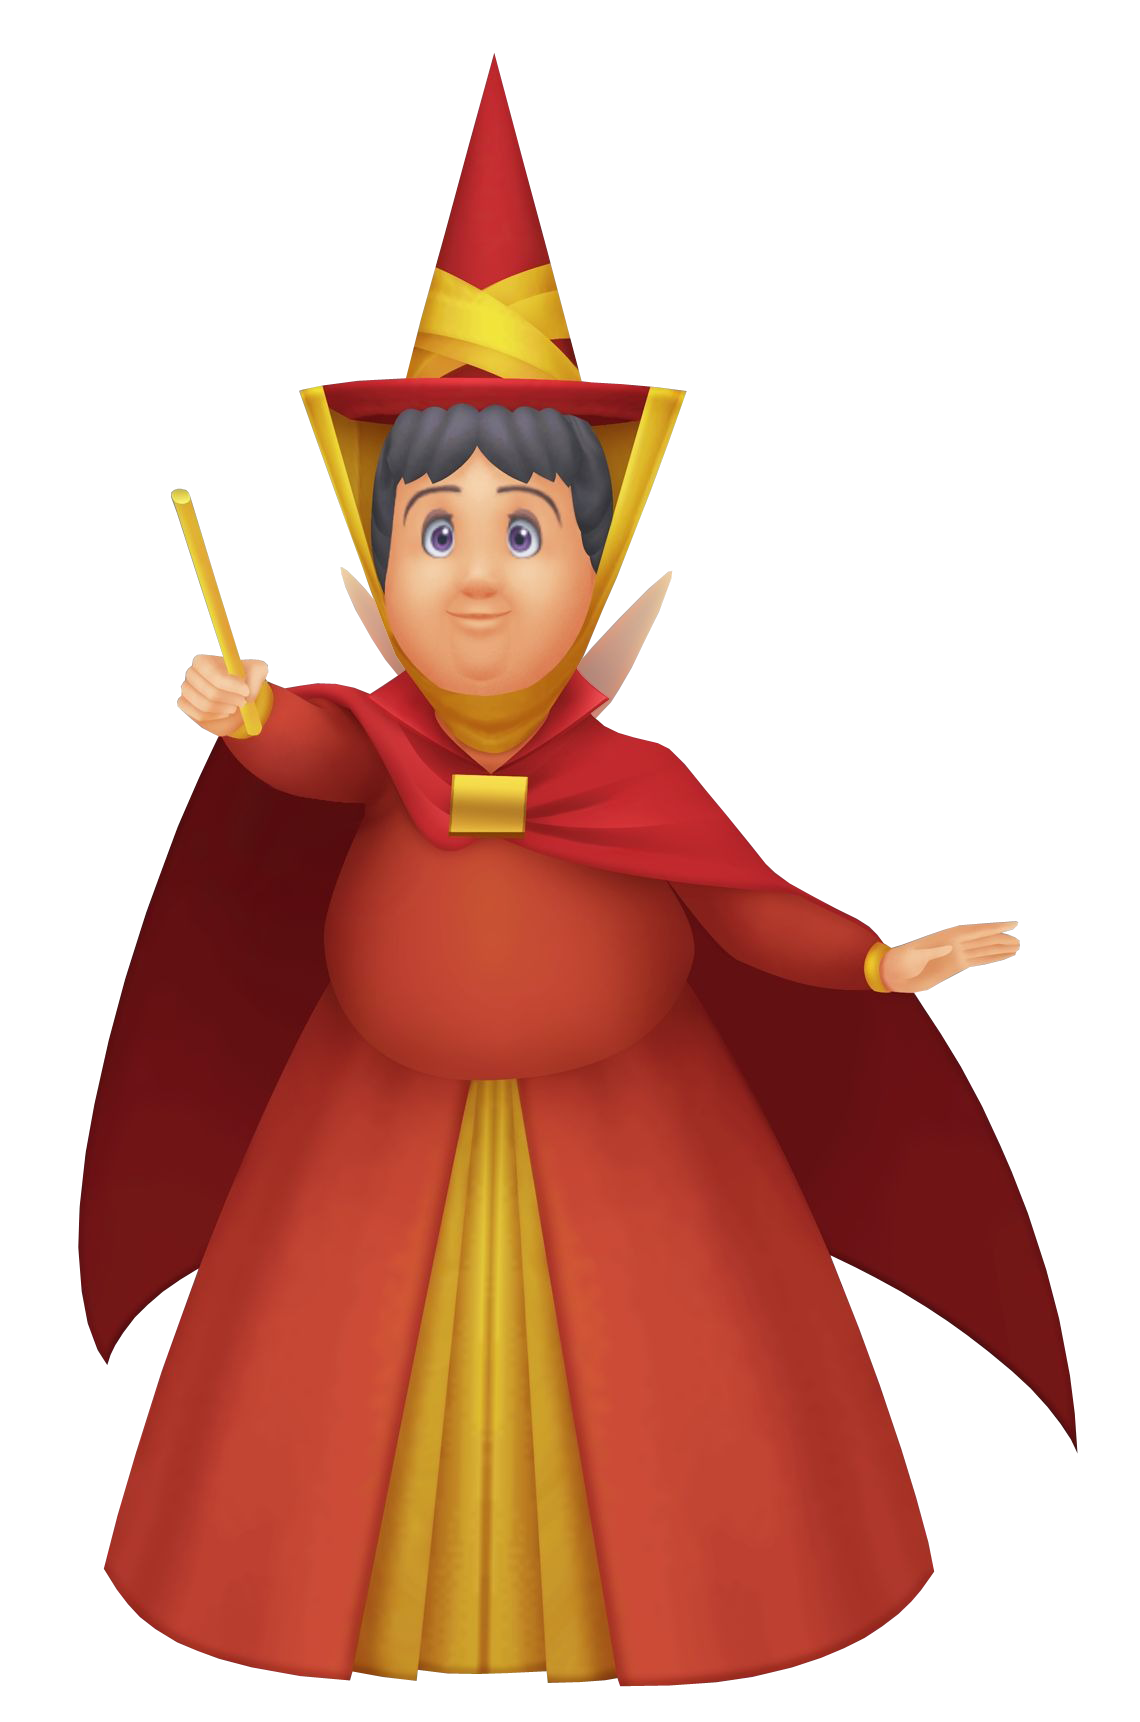 Primavera fairy godmothers pinterest. Costume clipart story character